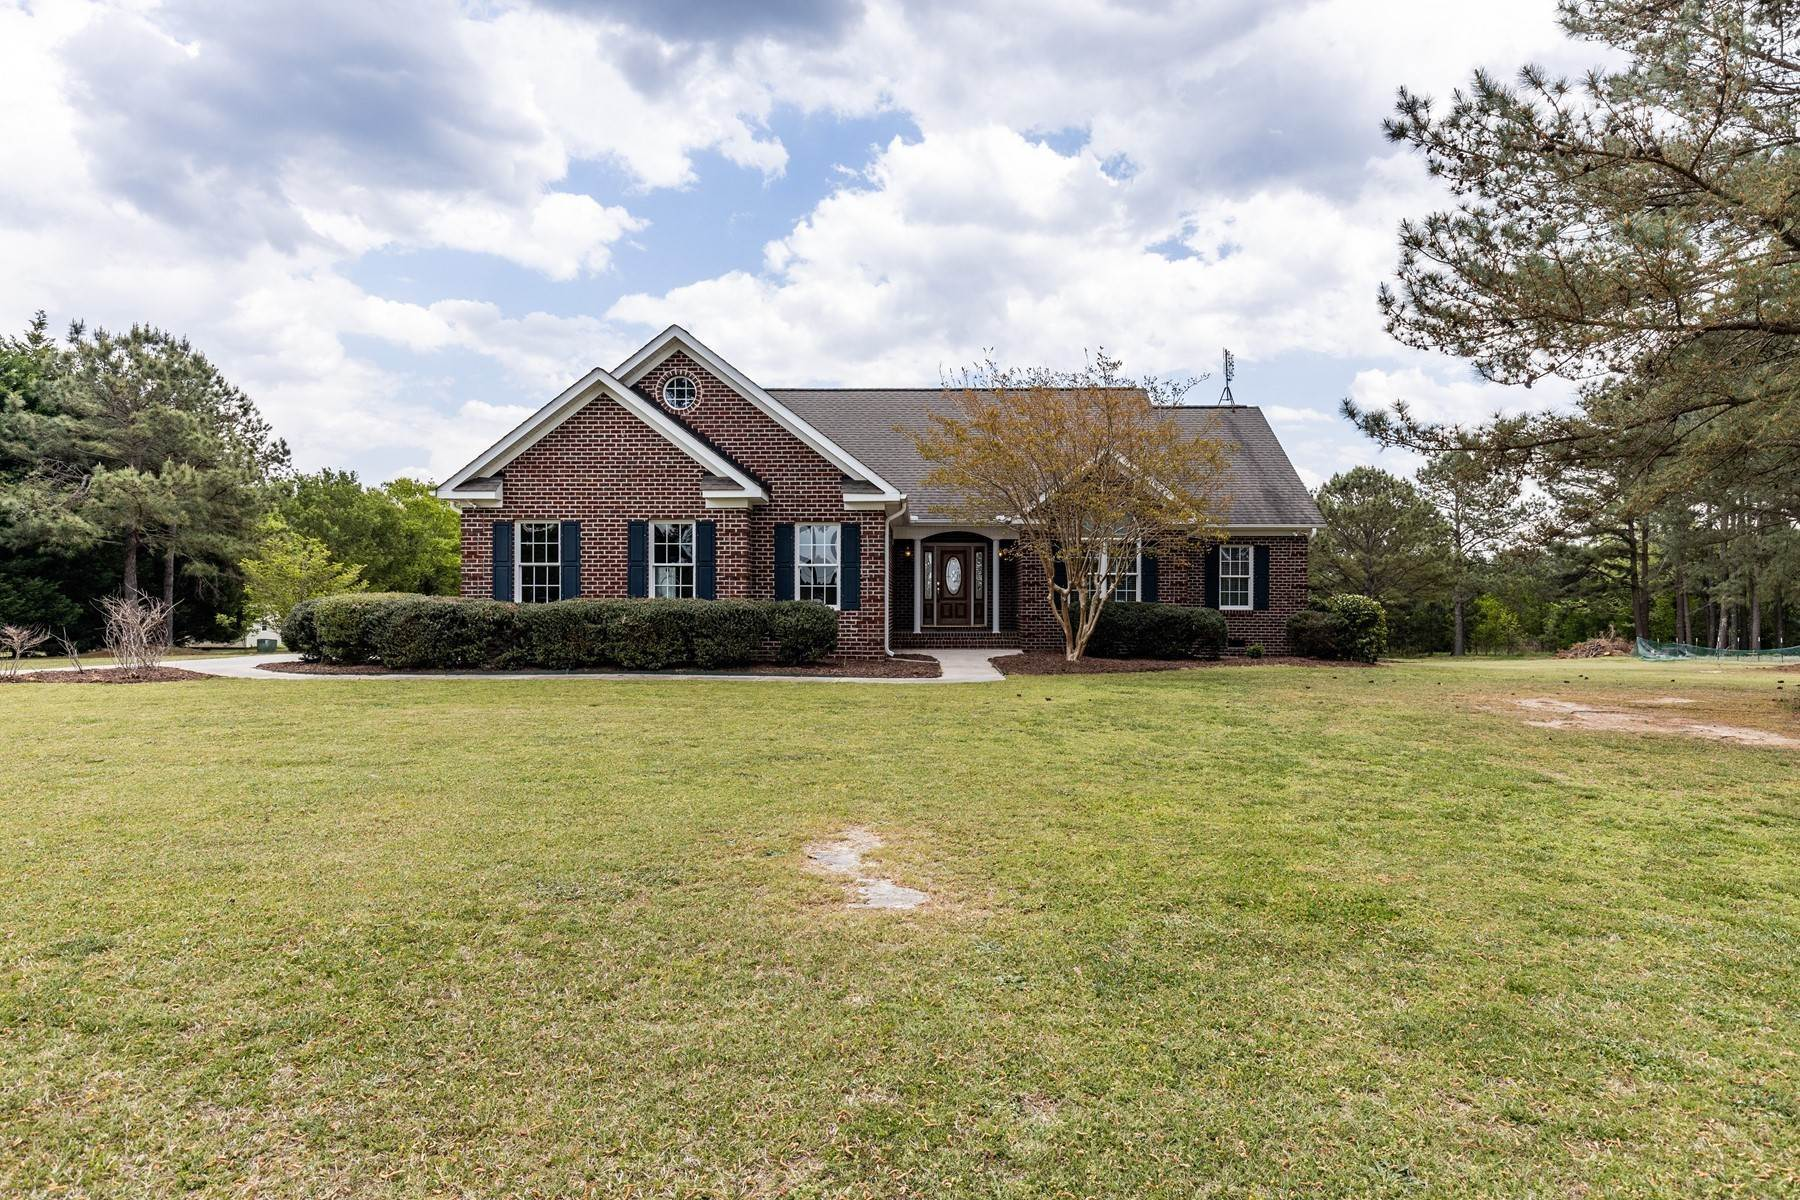 Single Family Homes for Sale at 2239 Mays Crossroads Road Louisburg, North Carolina 27549 United States